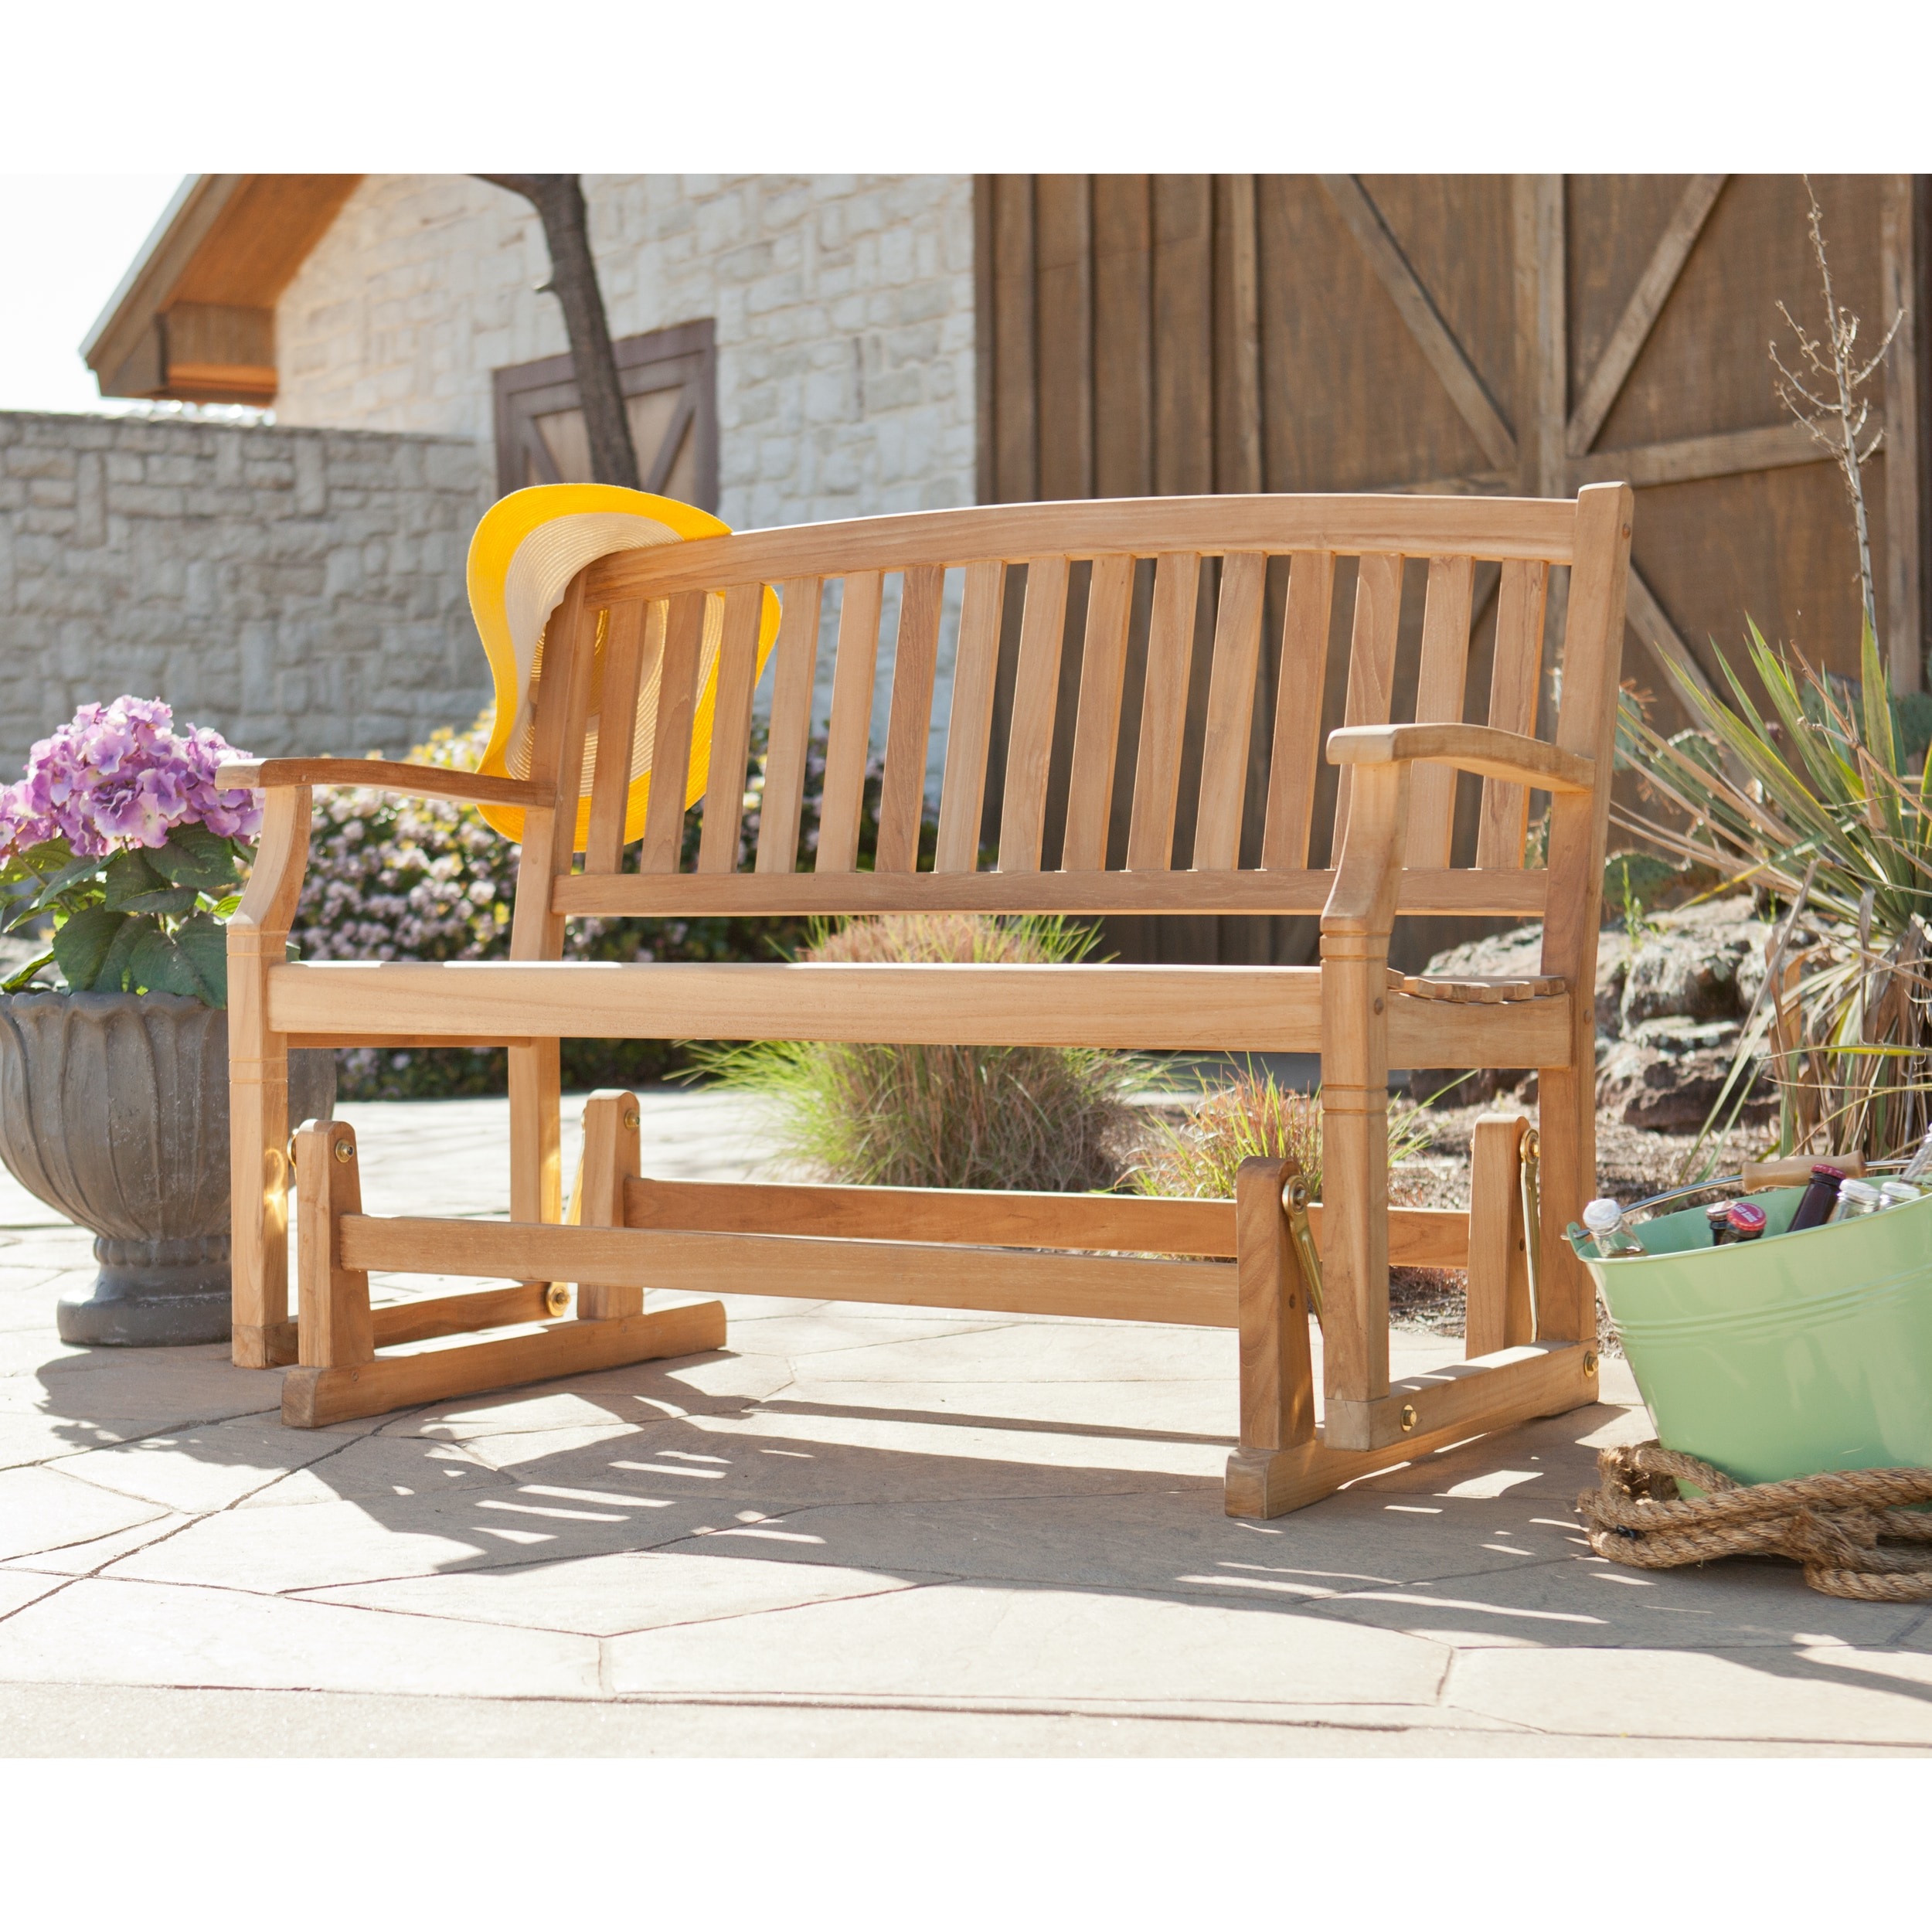 patio wooden storage on with benches glider bench hayneedle rocking for sale outdoor white